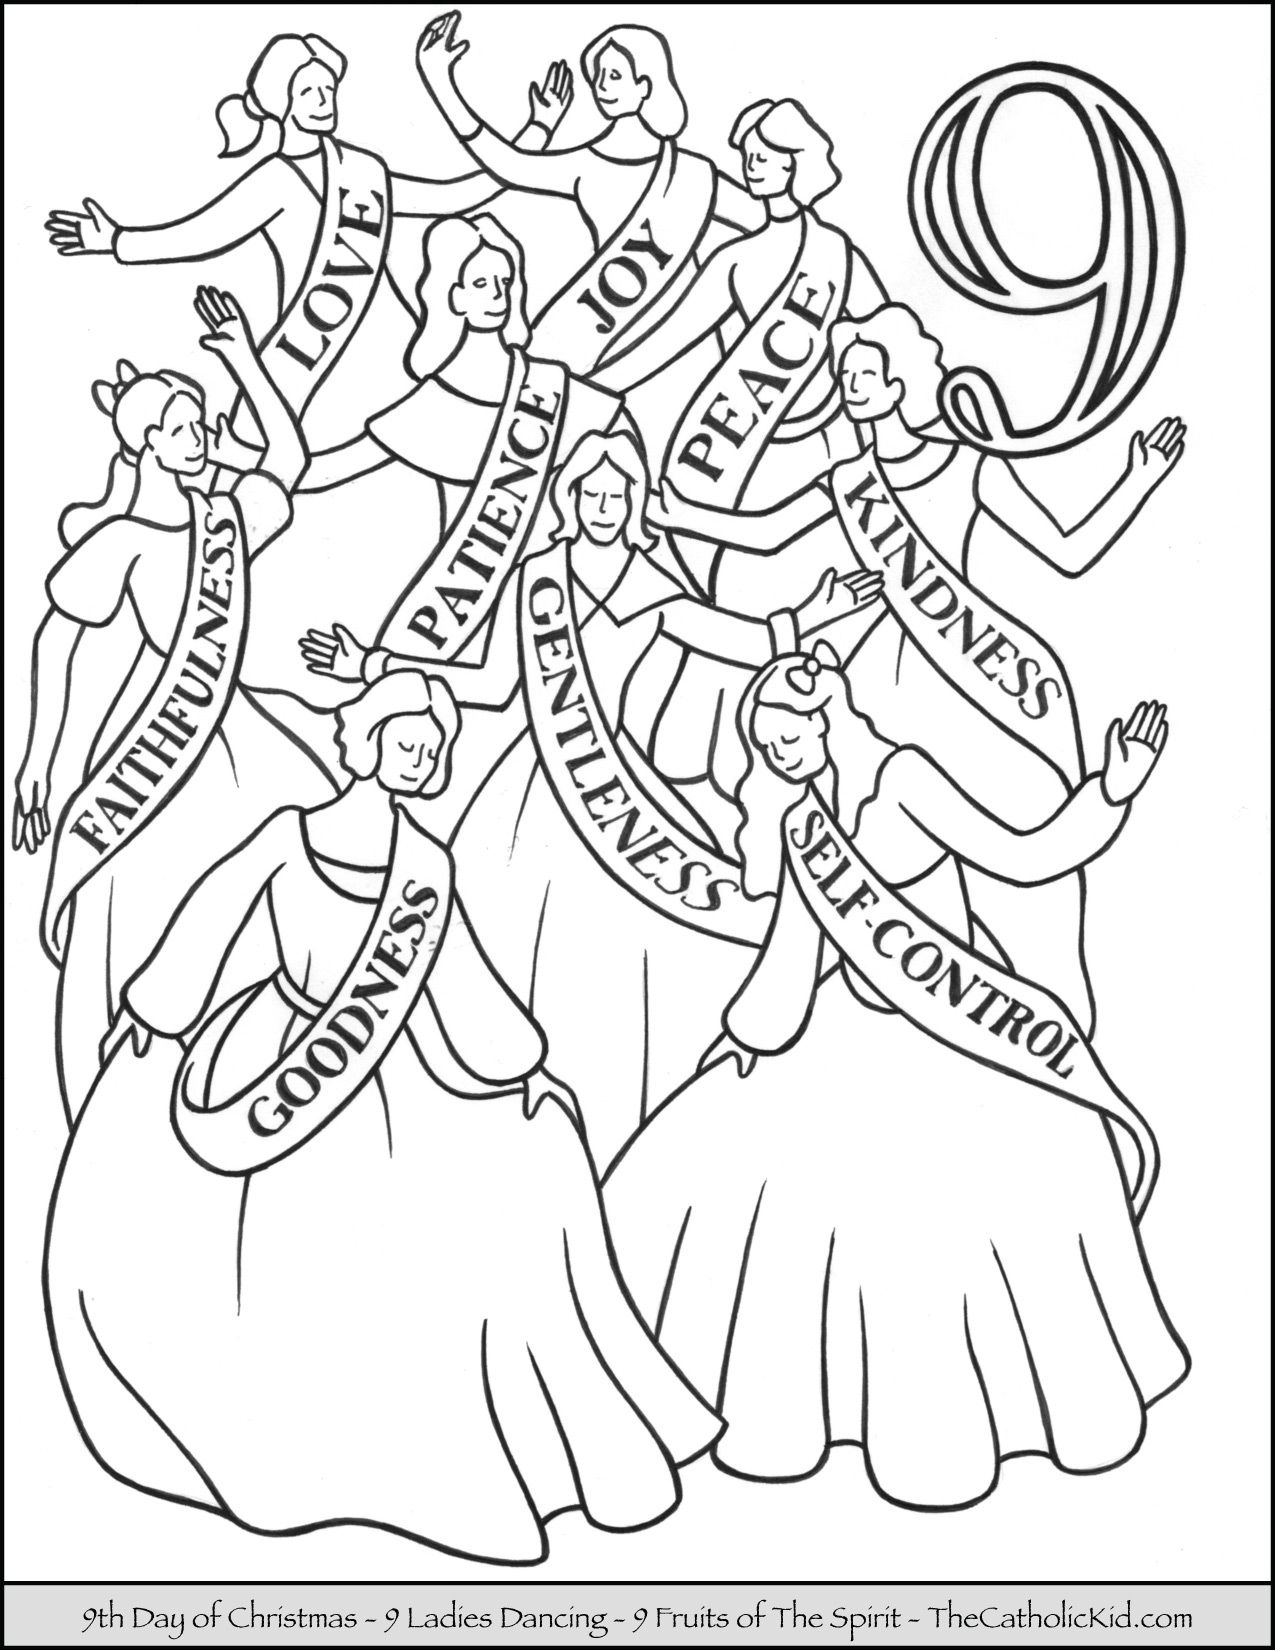 12 days of christmas coloring pages 12 best 12 days of christmas coloring pages for kids coloring days pages 12 christmas of